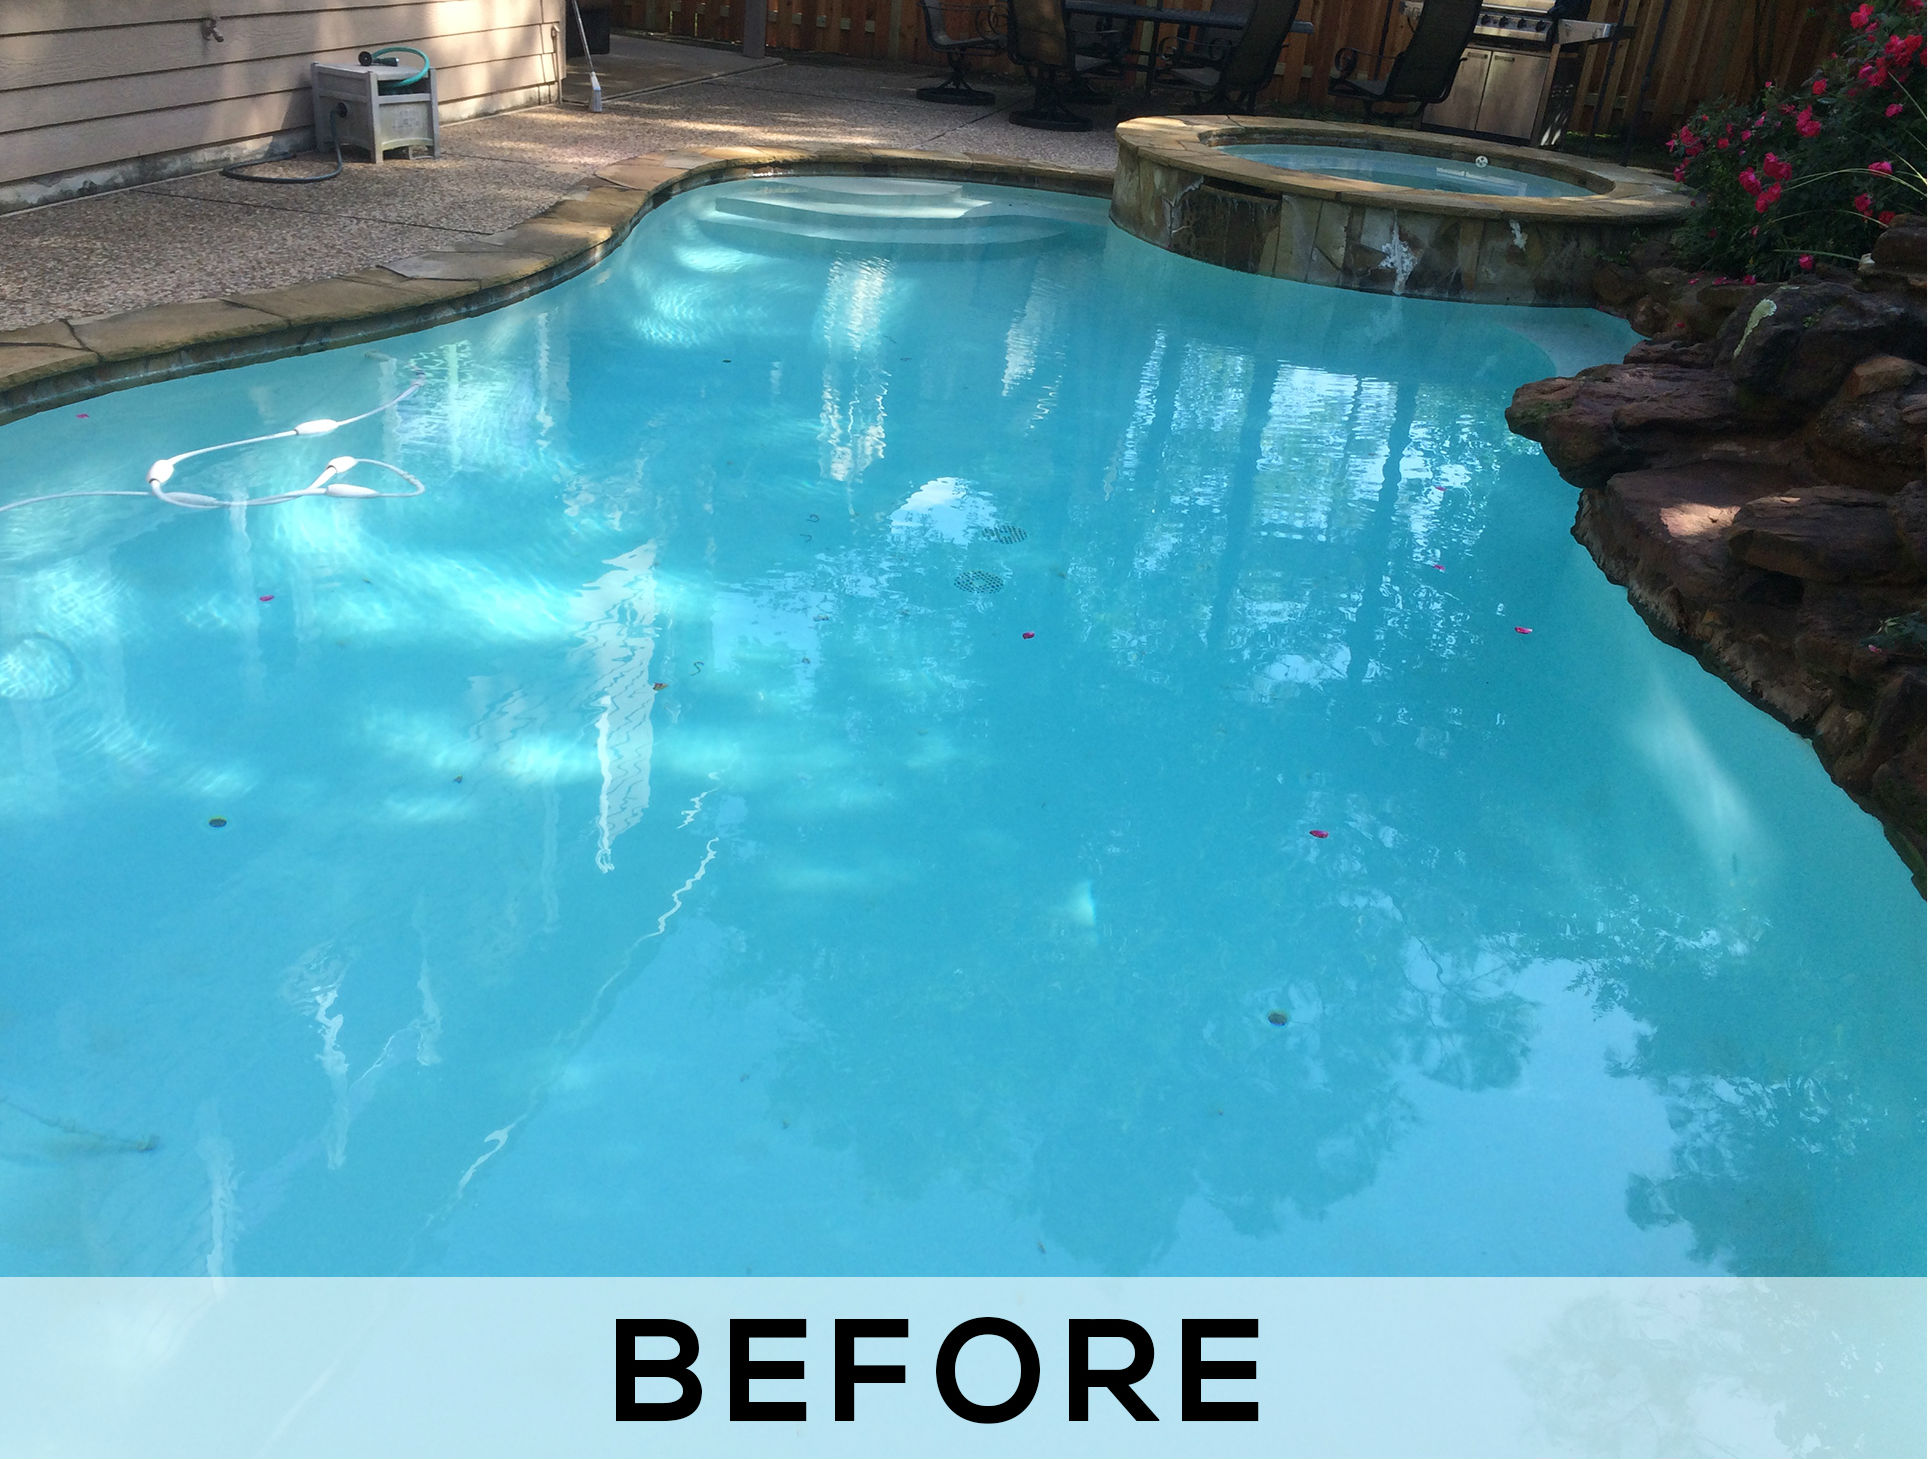 Pool Remodeling Service - Before